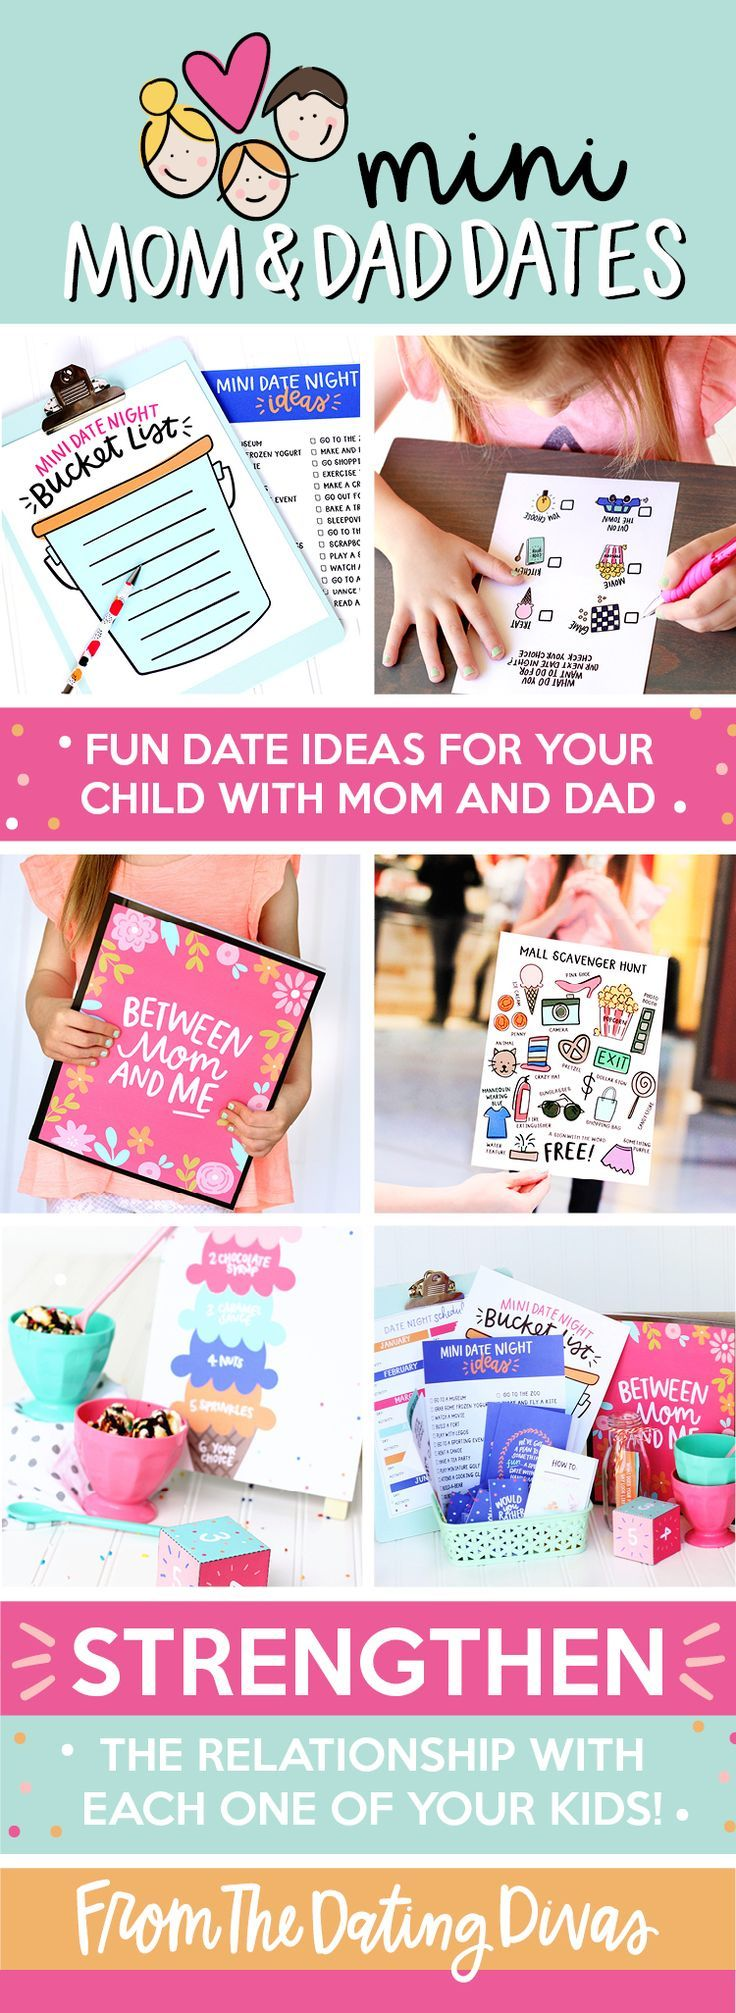 #Ad Making an effort to spend quality, one-on-one time with your kiddos is so important but I feel like I always have trouble coming up with ways to make it fun for both of us. I'm so excited that I found a product from The Dating Divas filled with ideas to make a meaningful and memorable night with each of my little ones. All the creative work is done and all I have to do is print - which means even more quality time with my kids!